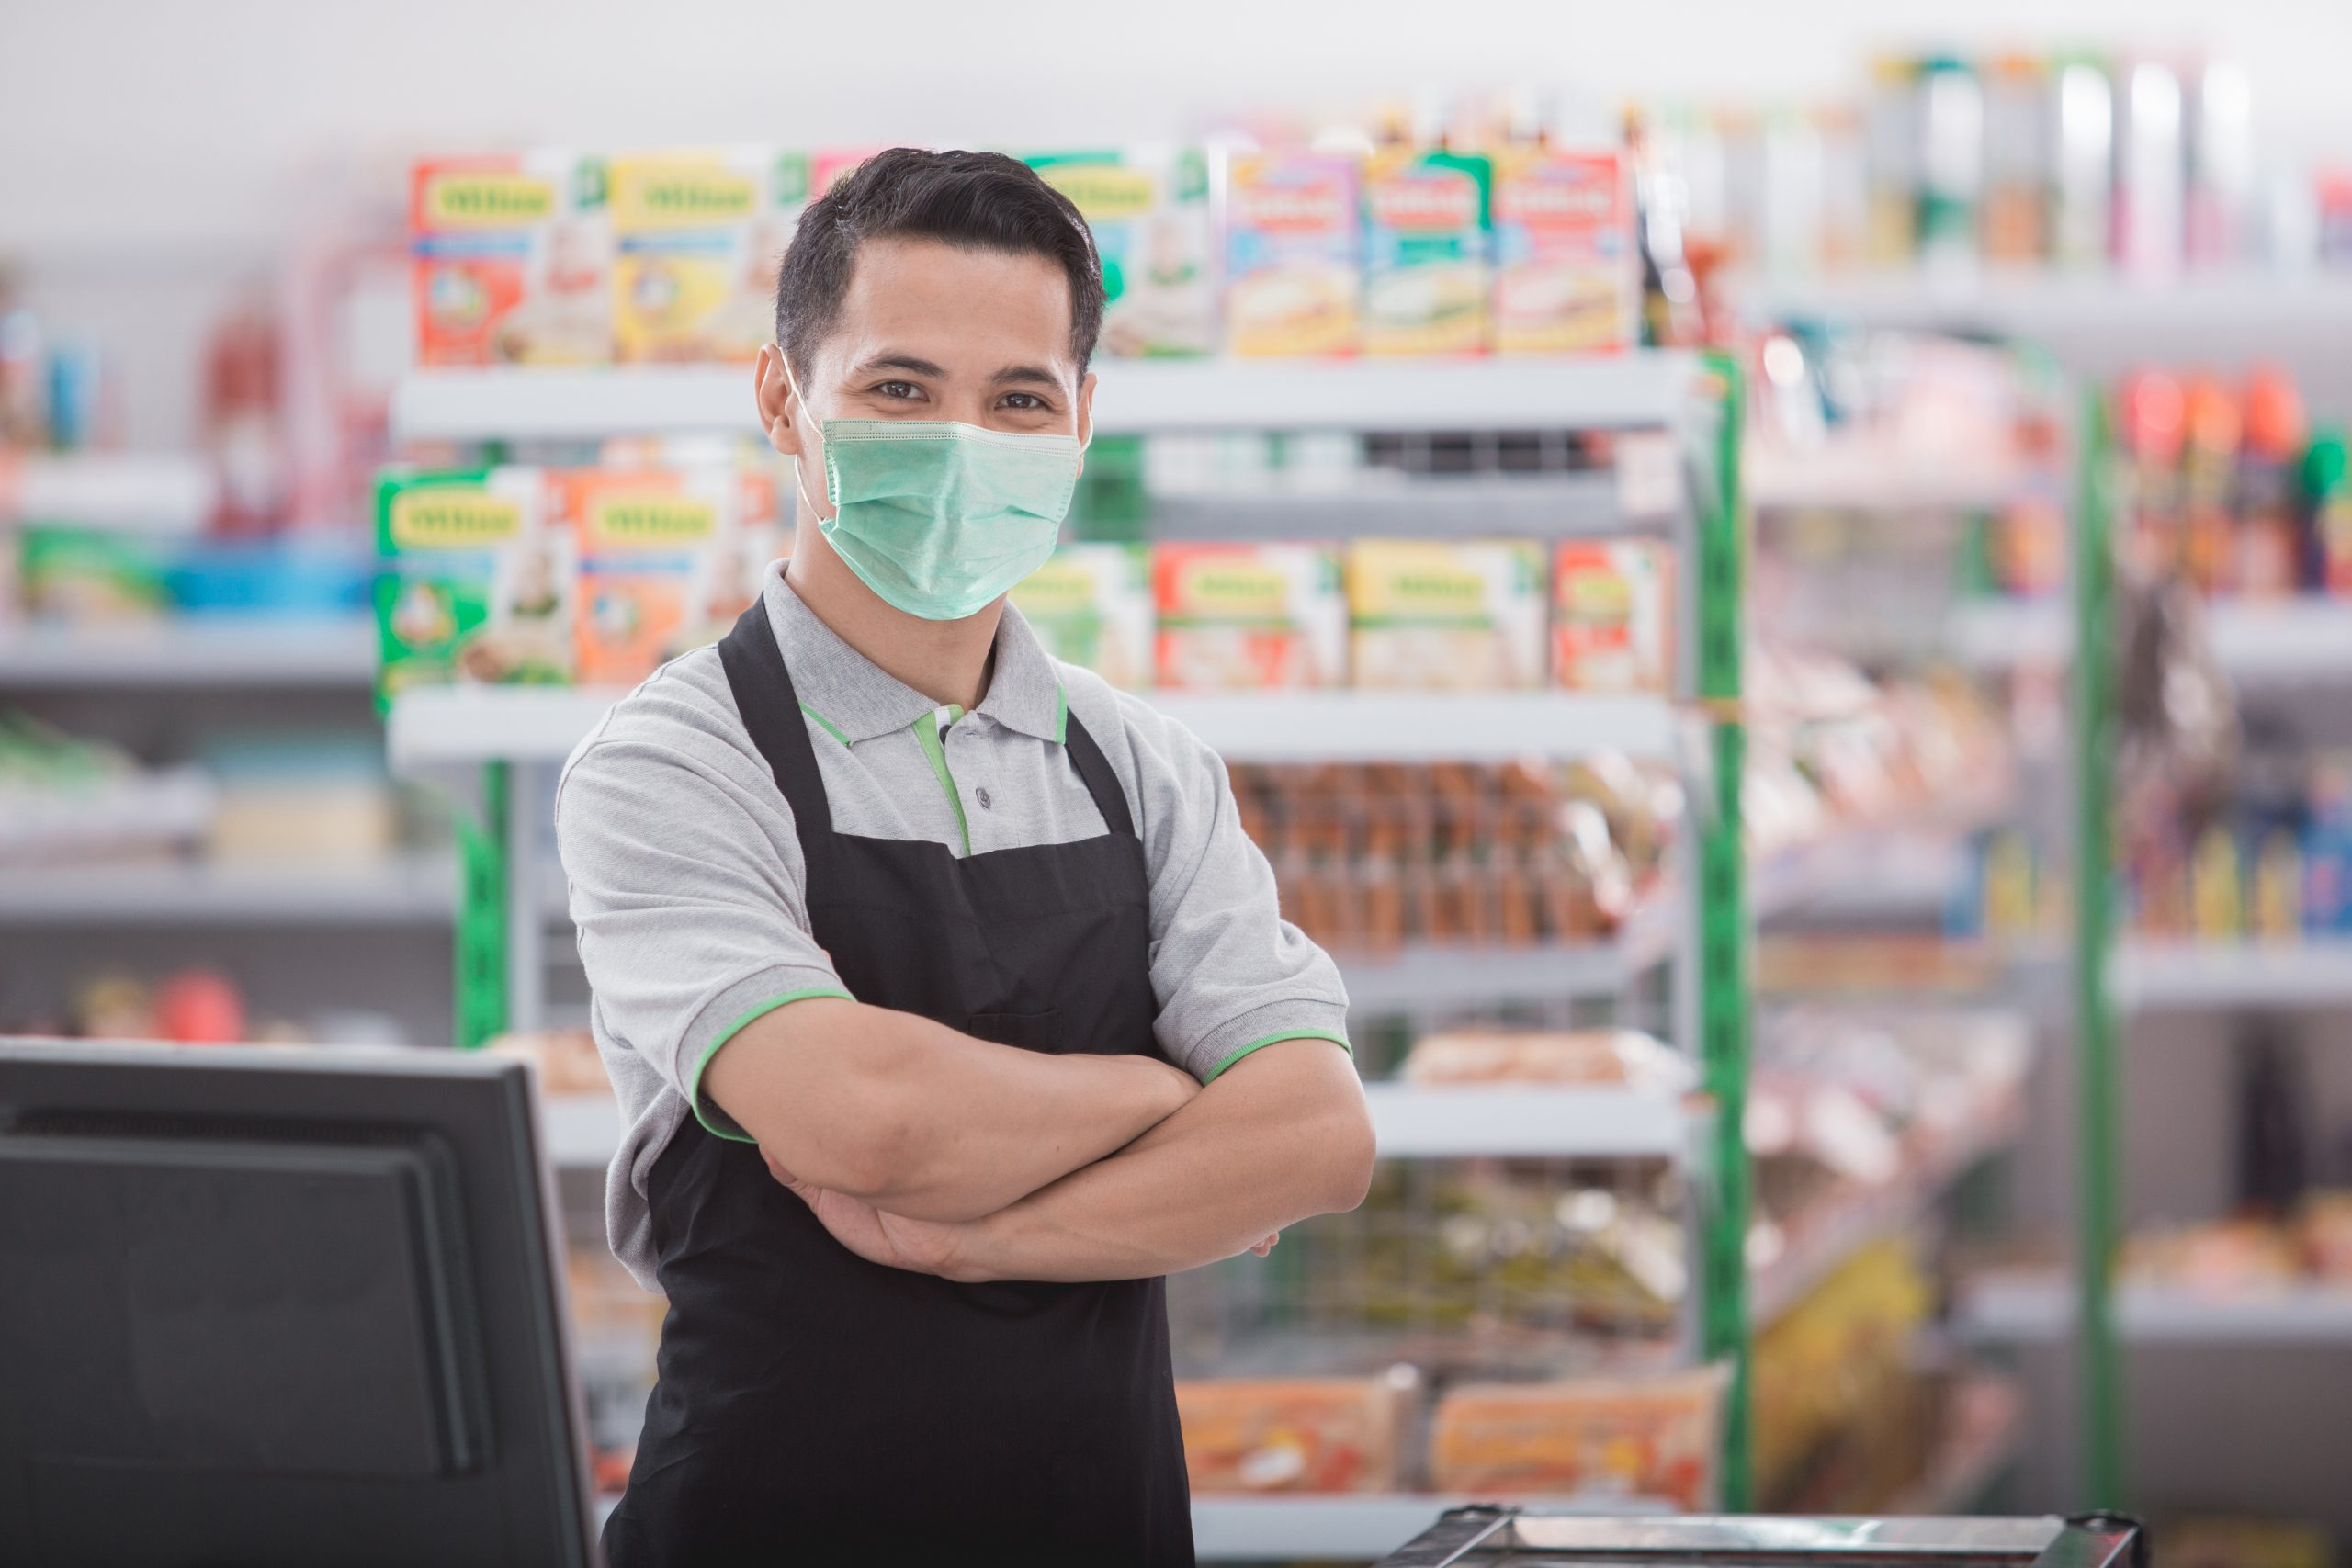 COVID champions: The Irish retailers going above and beyond during the pandemic